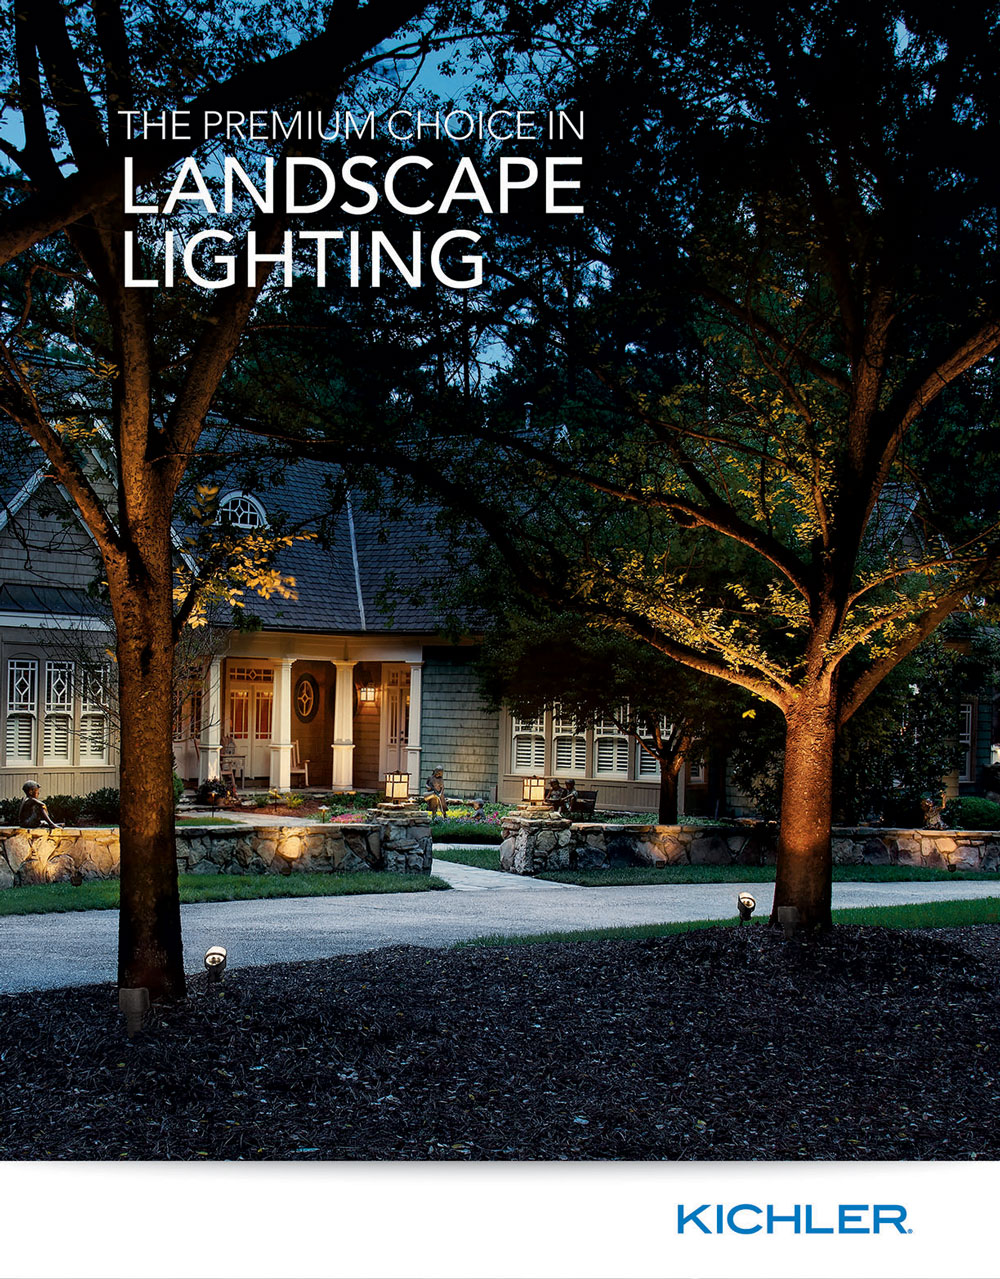 Kichler landscape lighting digital catalog estrin zirkman sales kichler landscape digital catalog aloadofball Choice Image